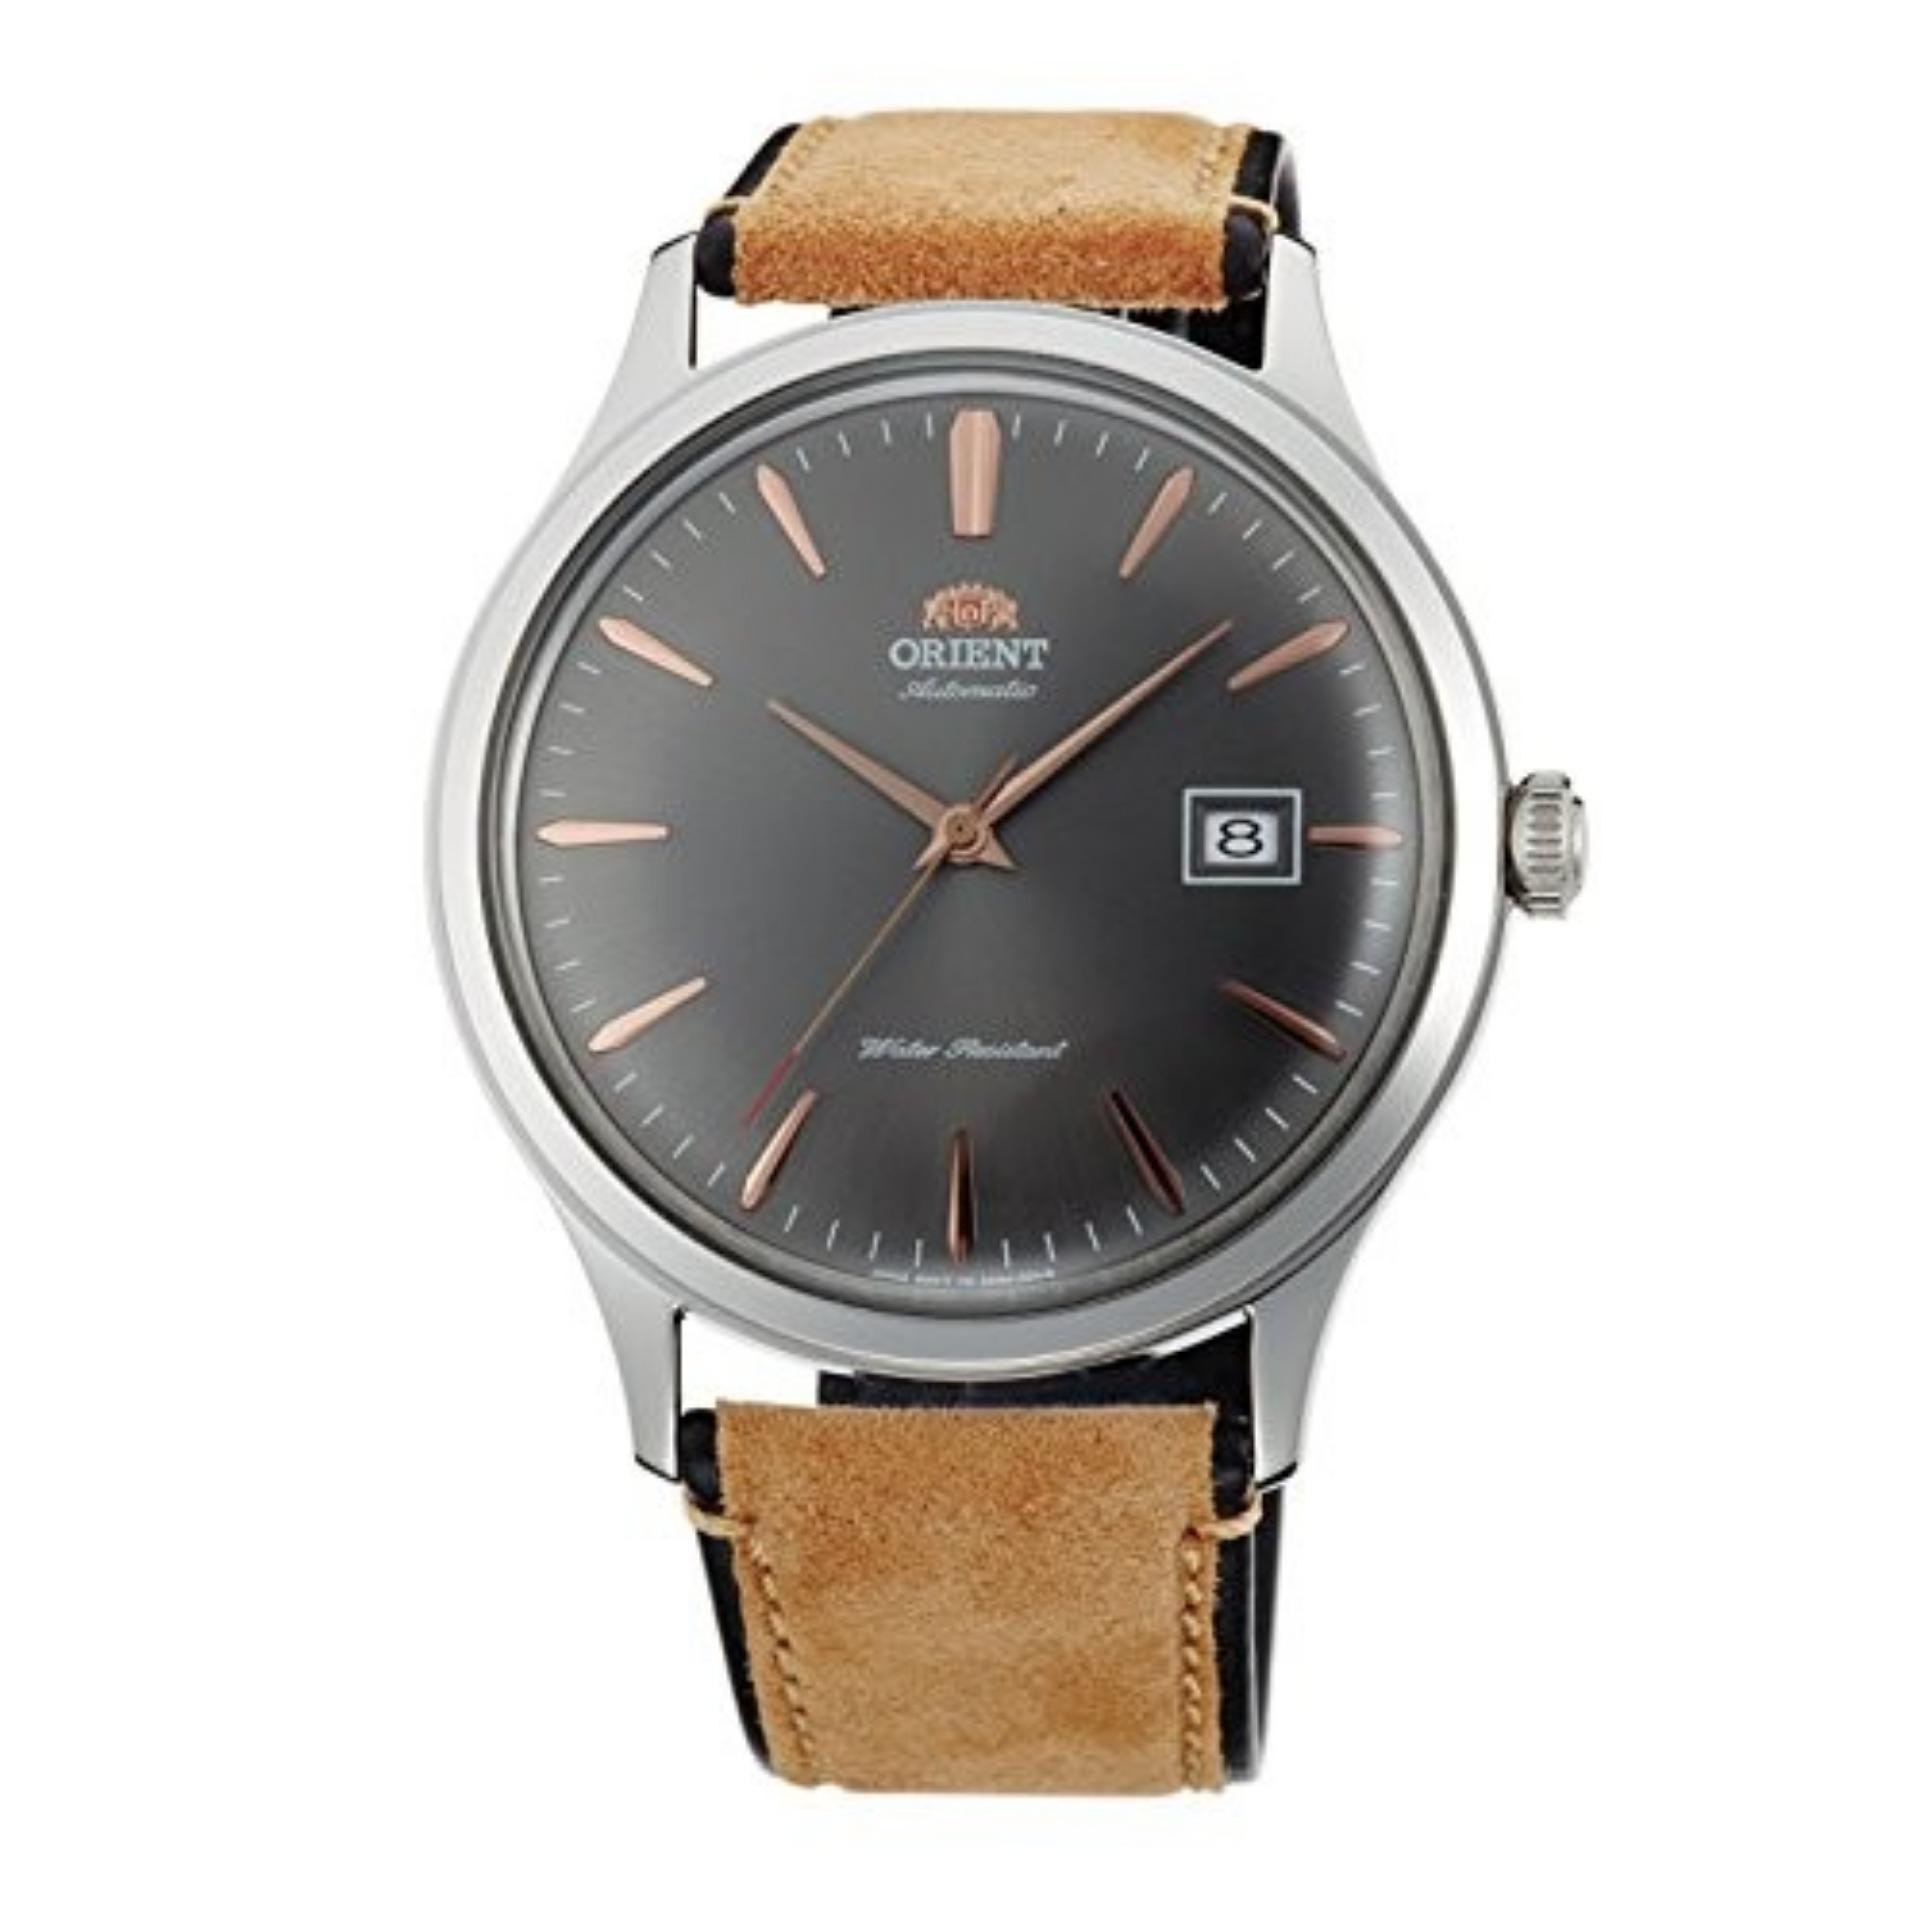 Orient Bambino Version 4 Japan Automatic Gent's Watch SAC08003A0